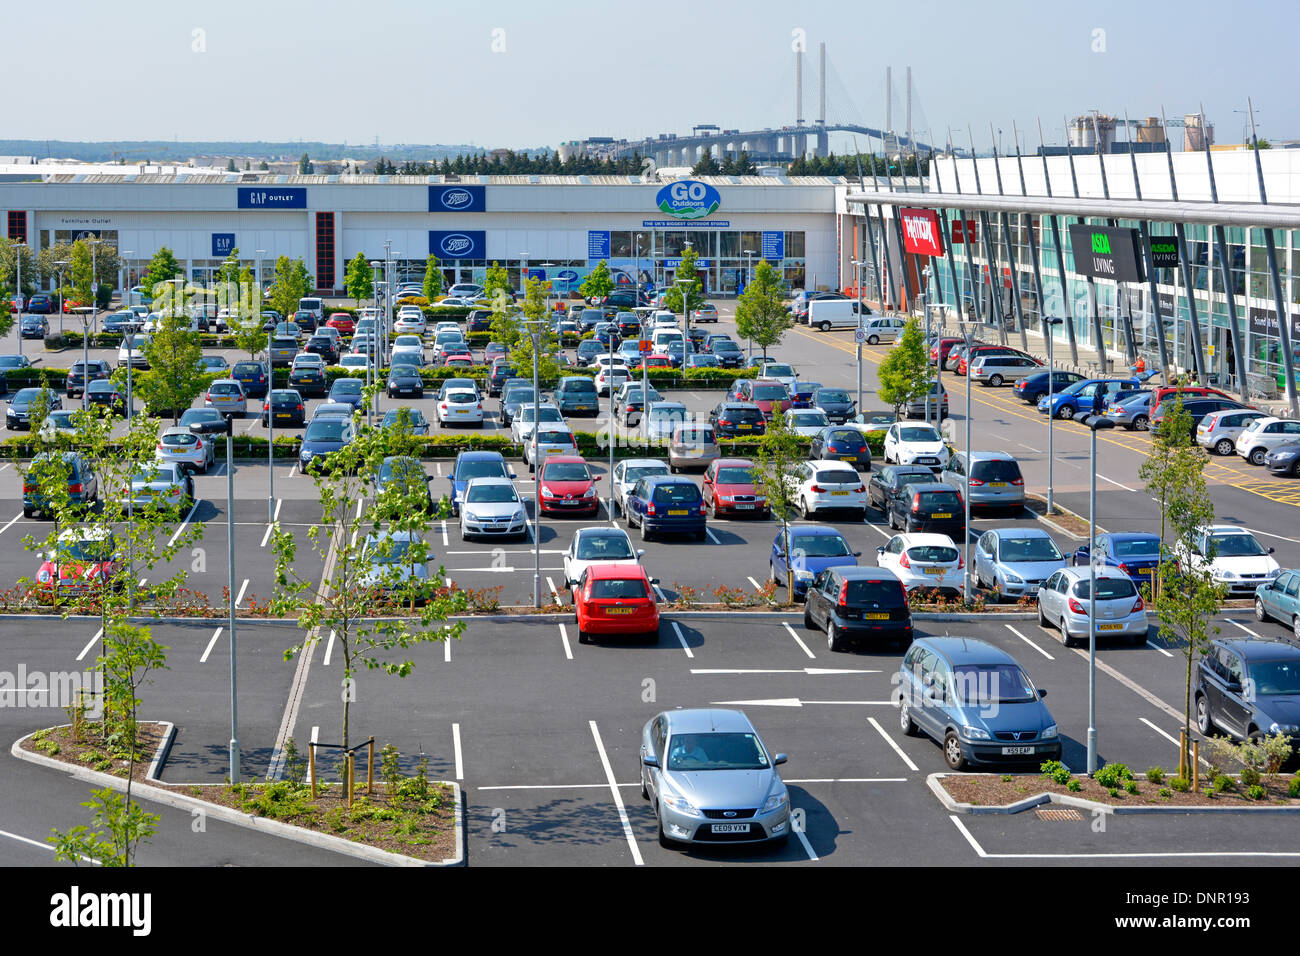 Free car parking facilities at Lakeside retail park shopping centre with Dartford M25 river crossing beyond - Stock Image